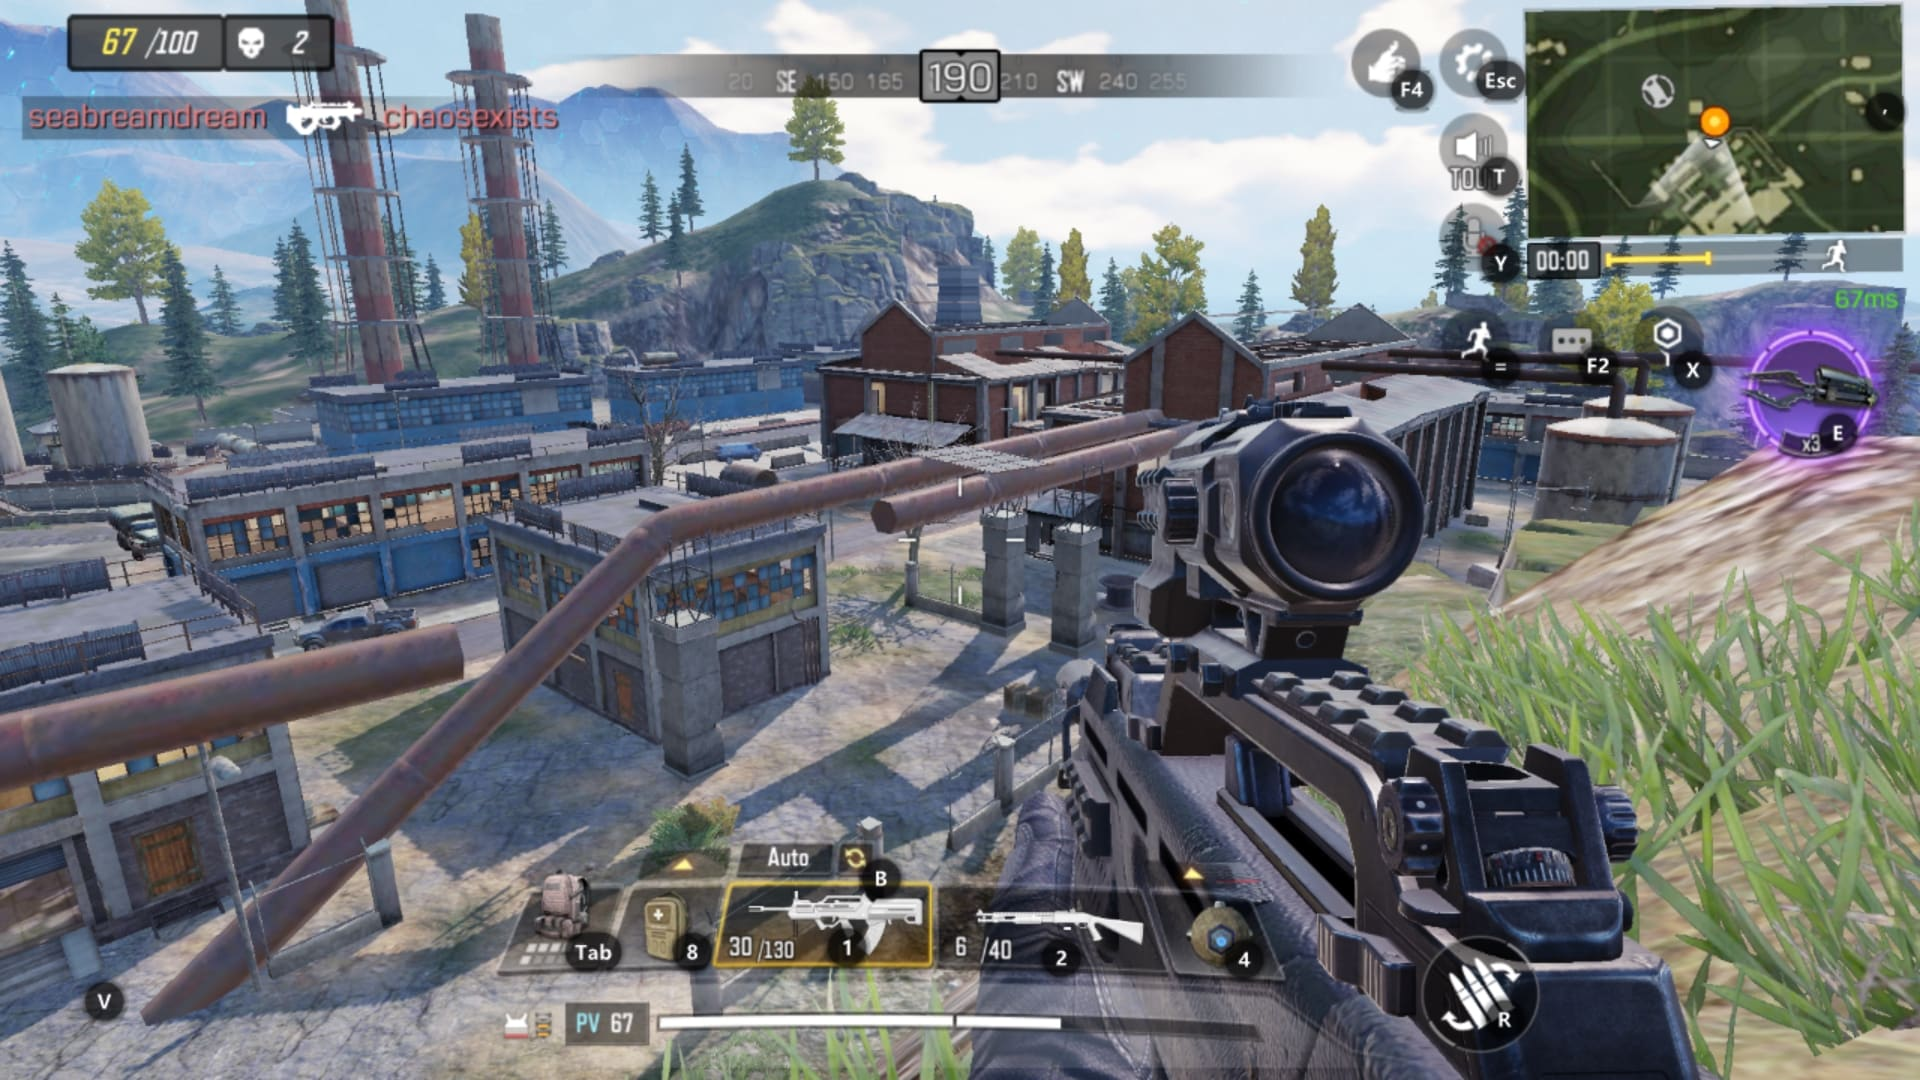 pipeline-ville-call-of-duty-mobile-carte-saison-1-isolated